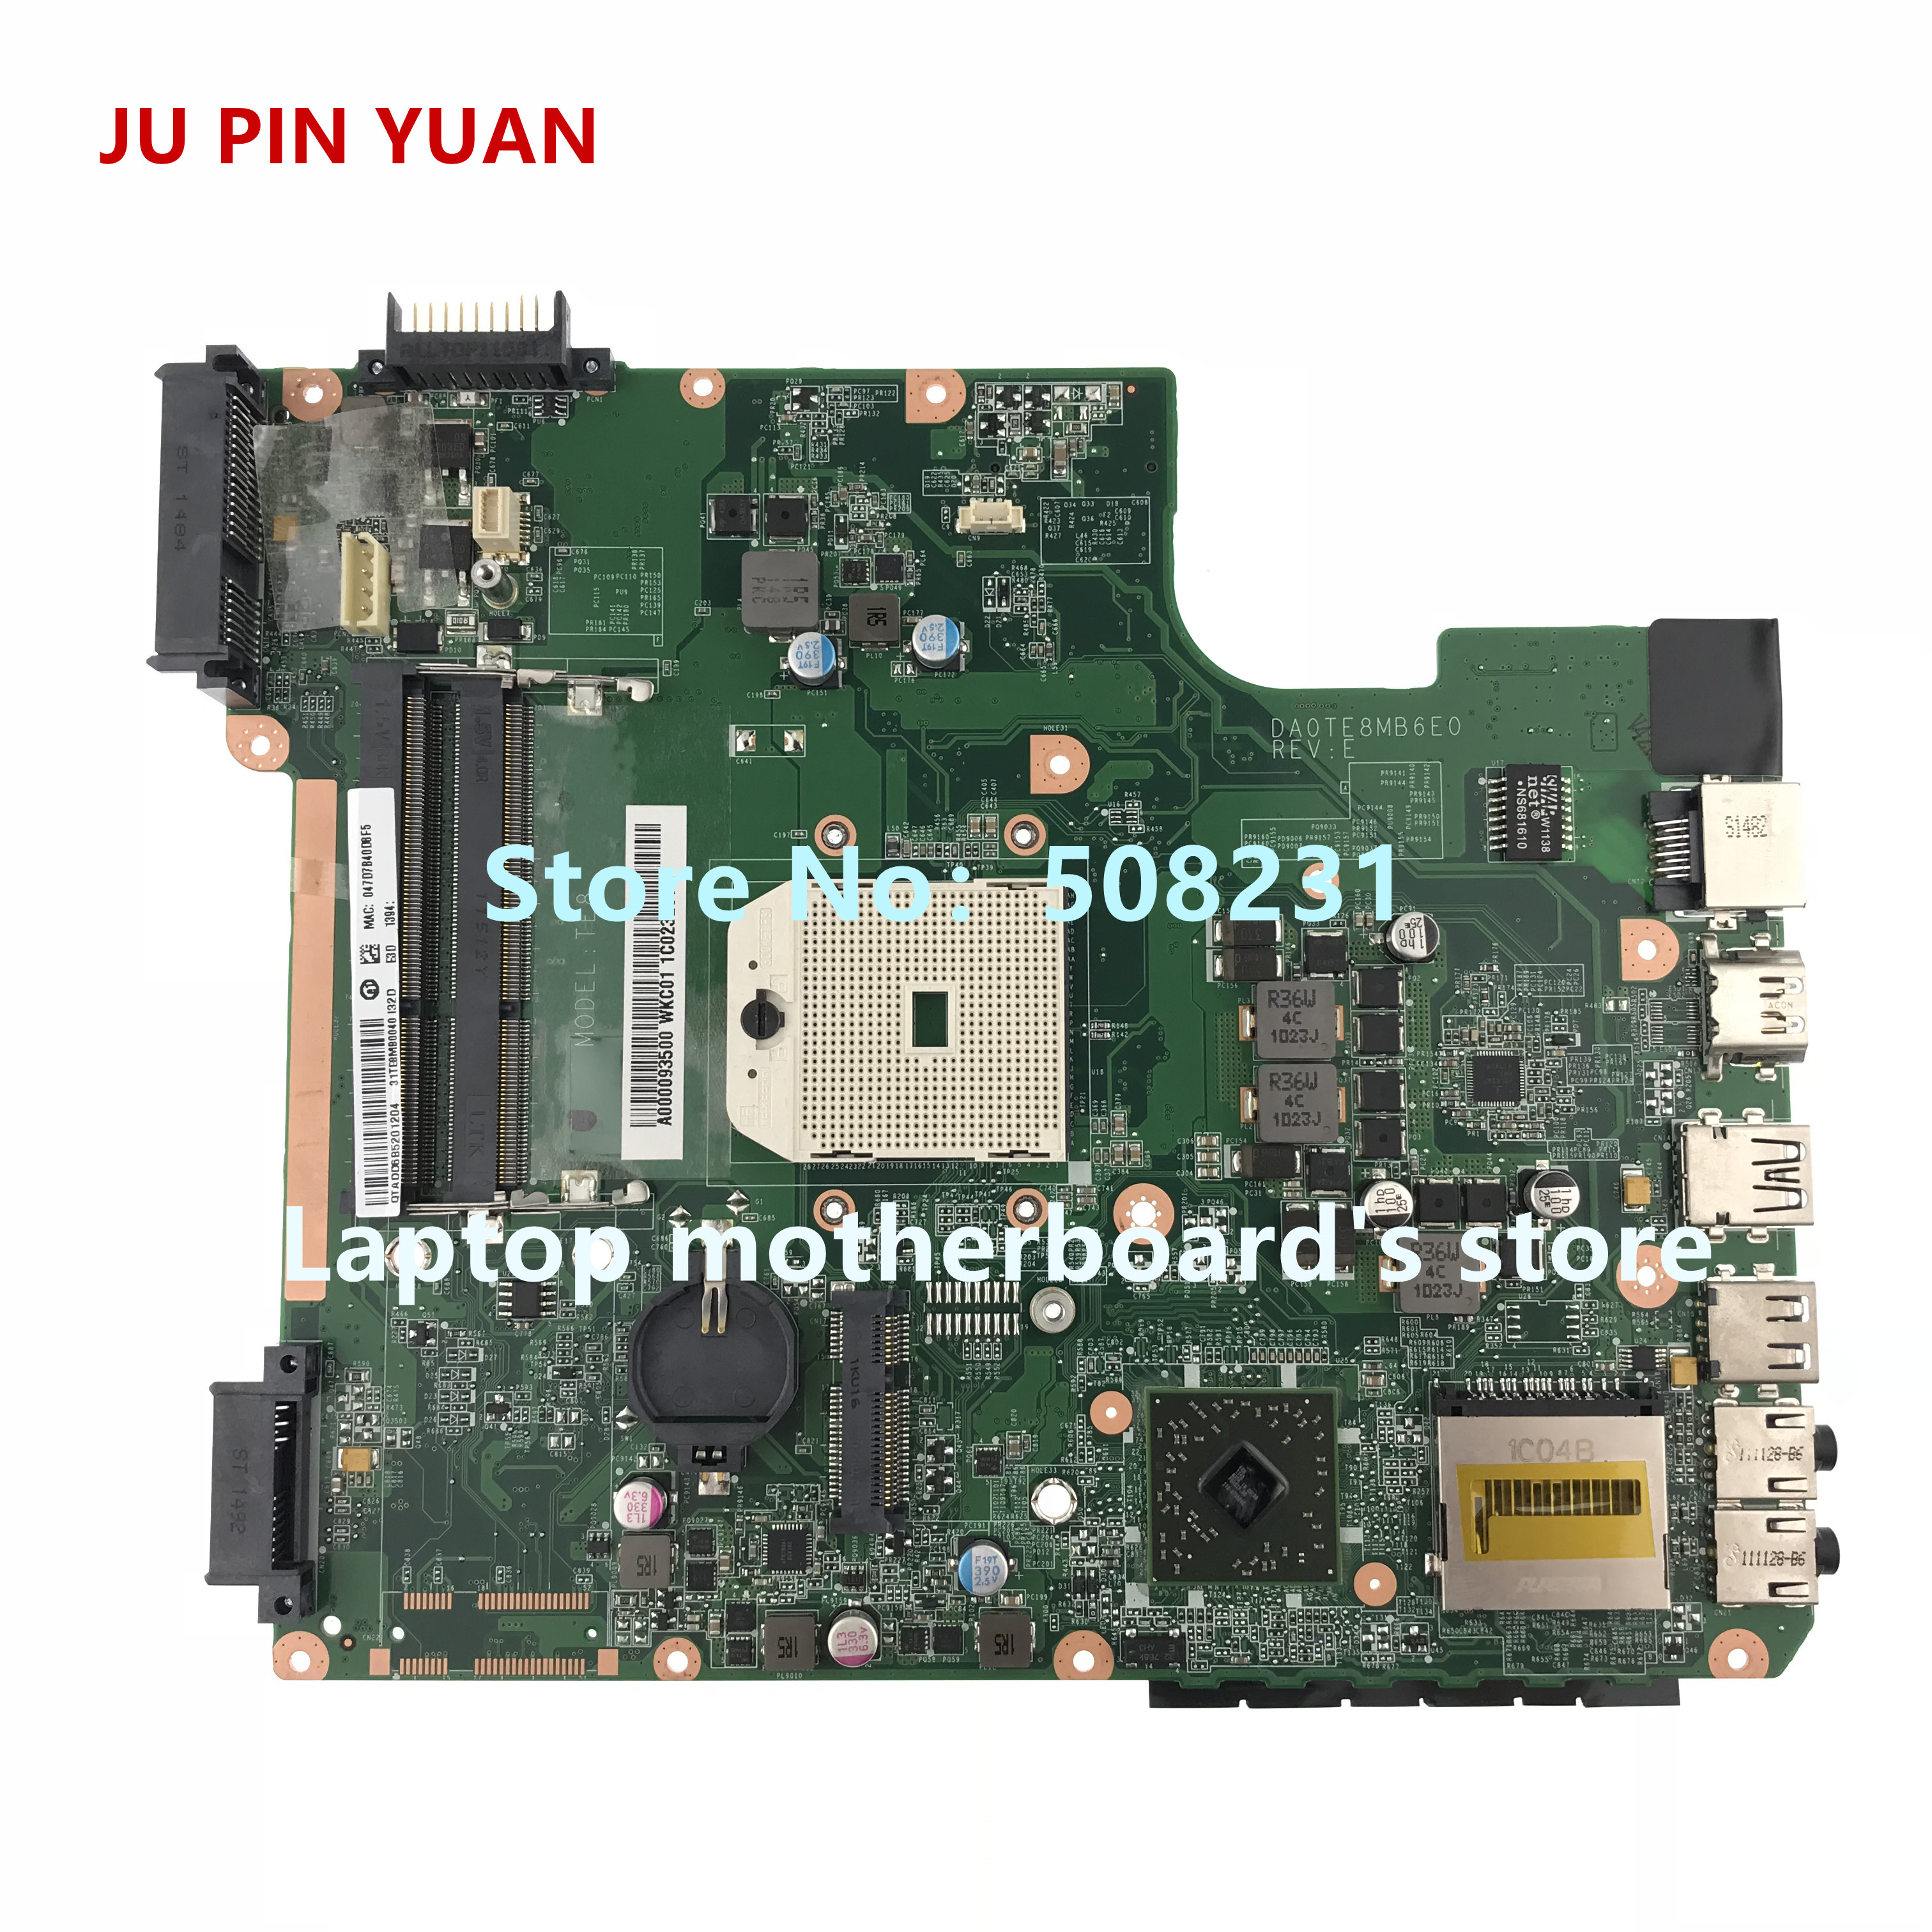 JU PIN YUAN A000093500 DA0TE8MB6E0 mainboard for Toshiba Satellite L745D series Laptop Motherboard All functions fully TestedJU PIN YUAN A000093500 DA0TE8MB6E0 mainboard for Toshiba Satellite L745D series Laptop Motherboard All functions fully Tested